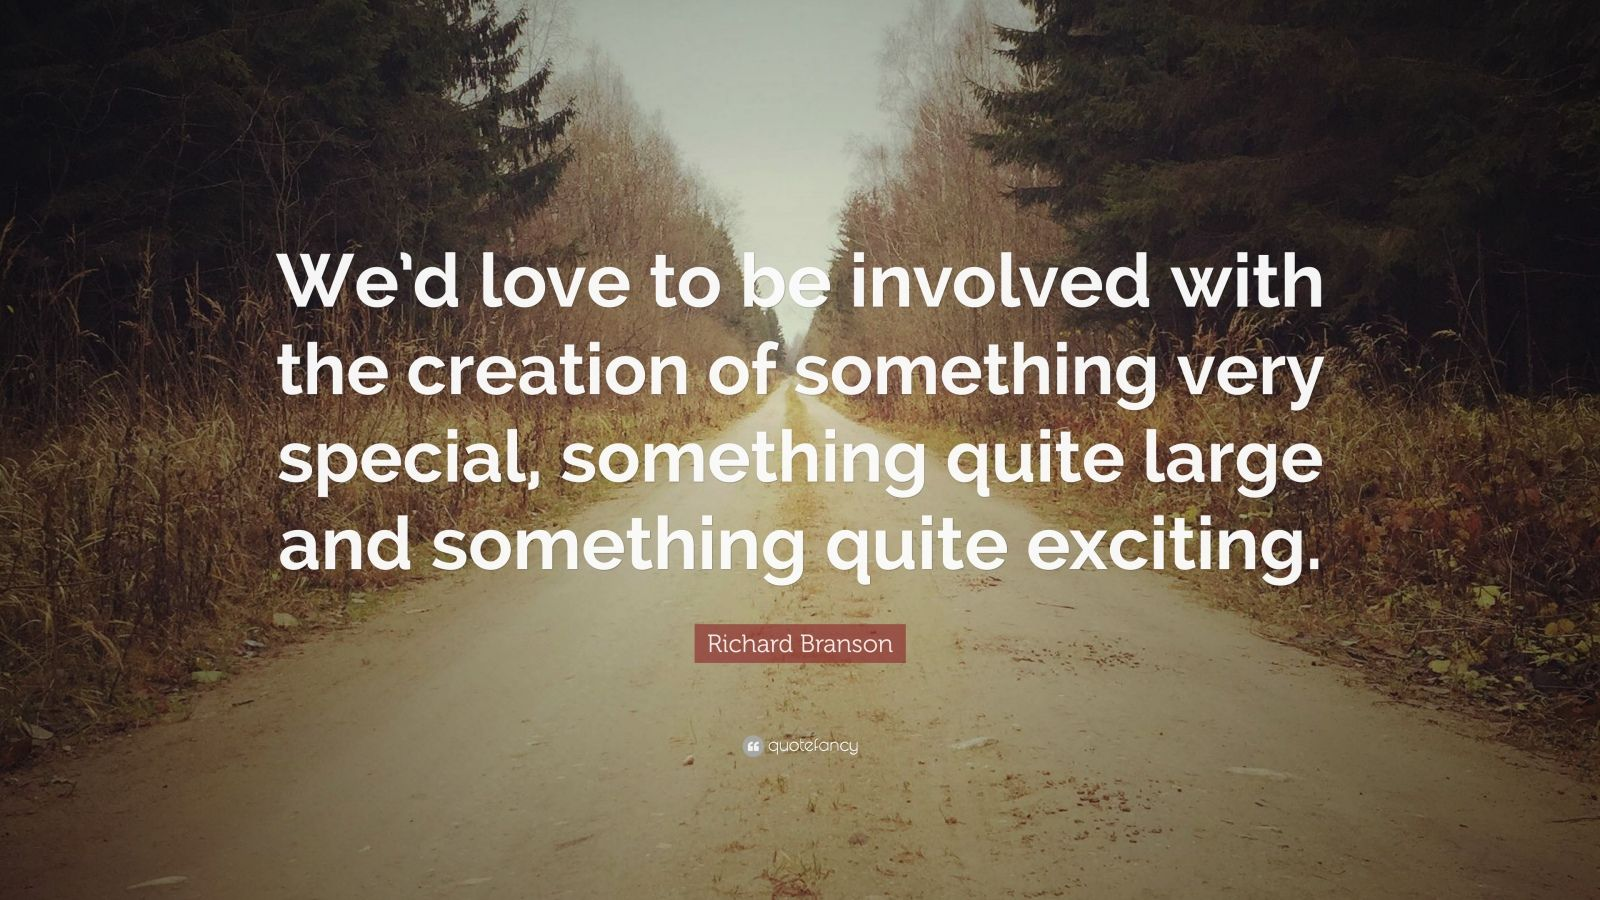 """Richard Branson Quote: """"We'd love to be involved with the creation of something very special, something quite large and something quite exciting."""""""